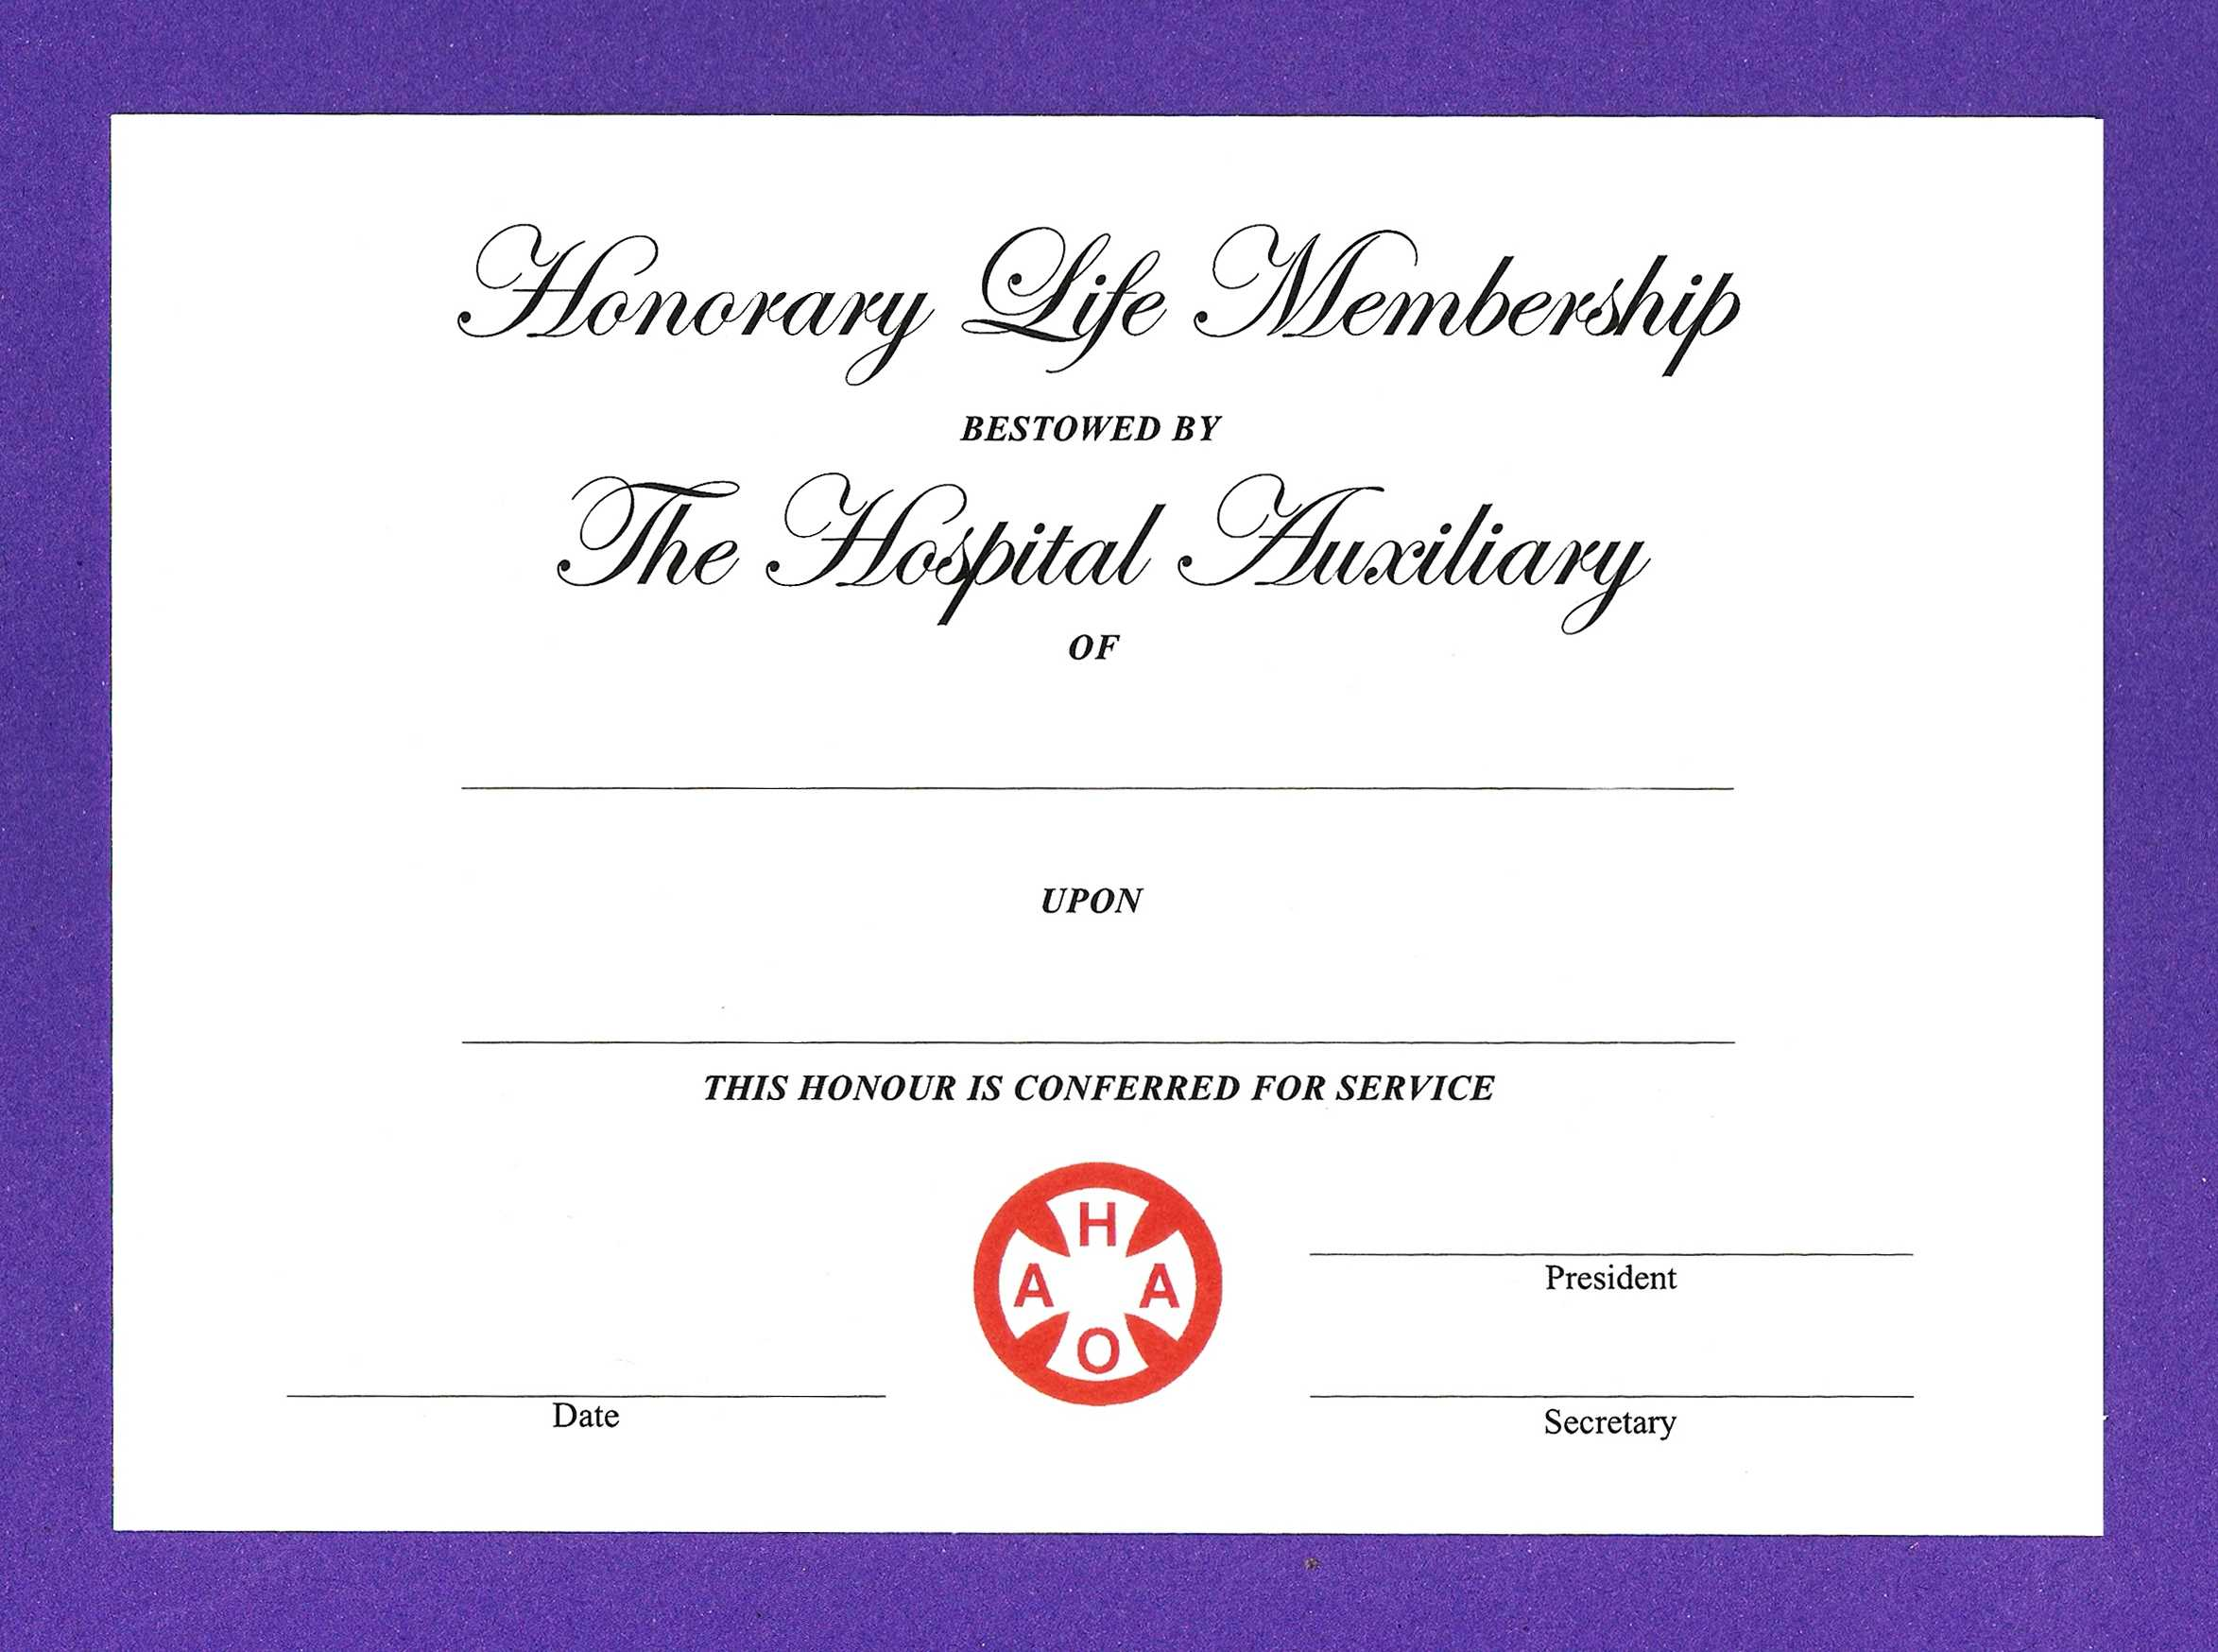 Life Membership Certificate Templates - Karan.ald2014 Throughout Life Membership Certificate Templates